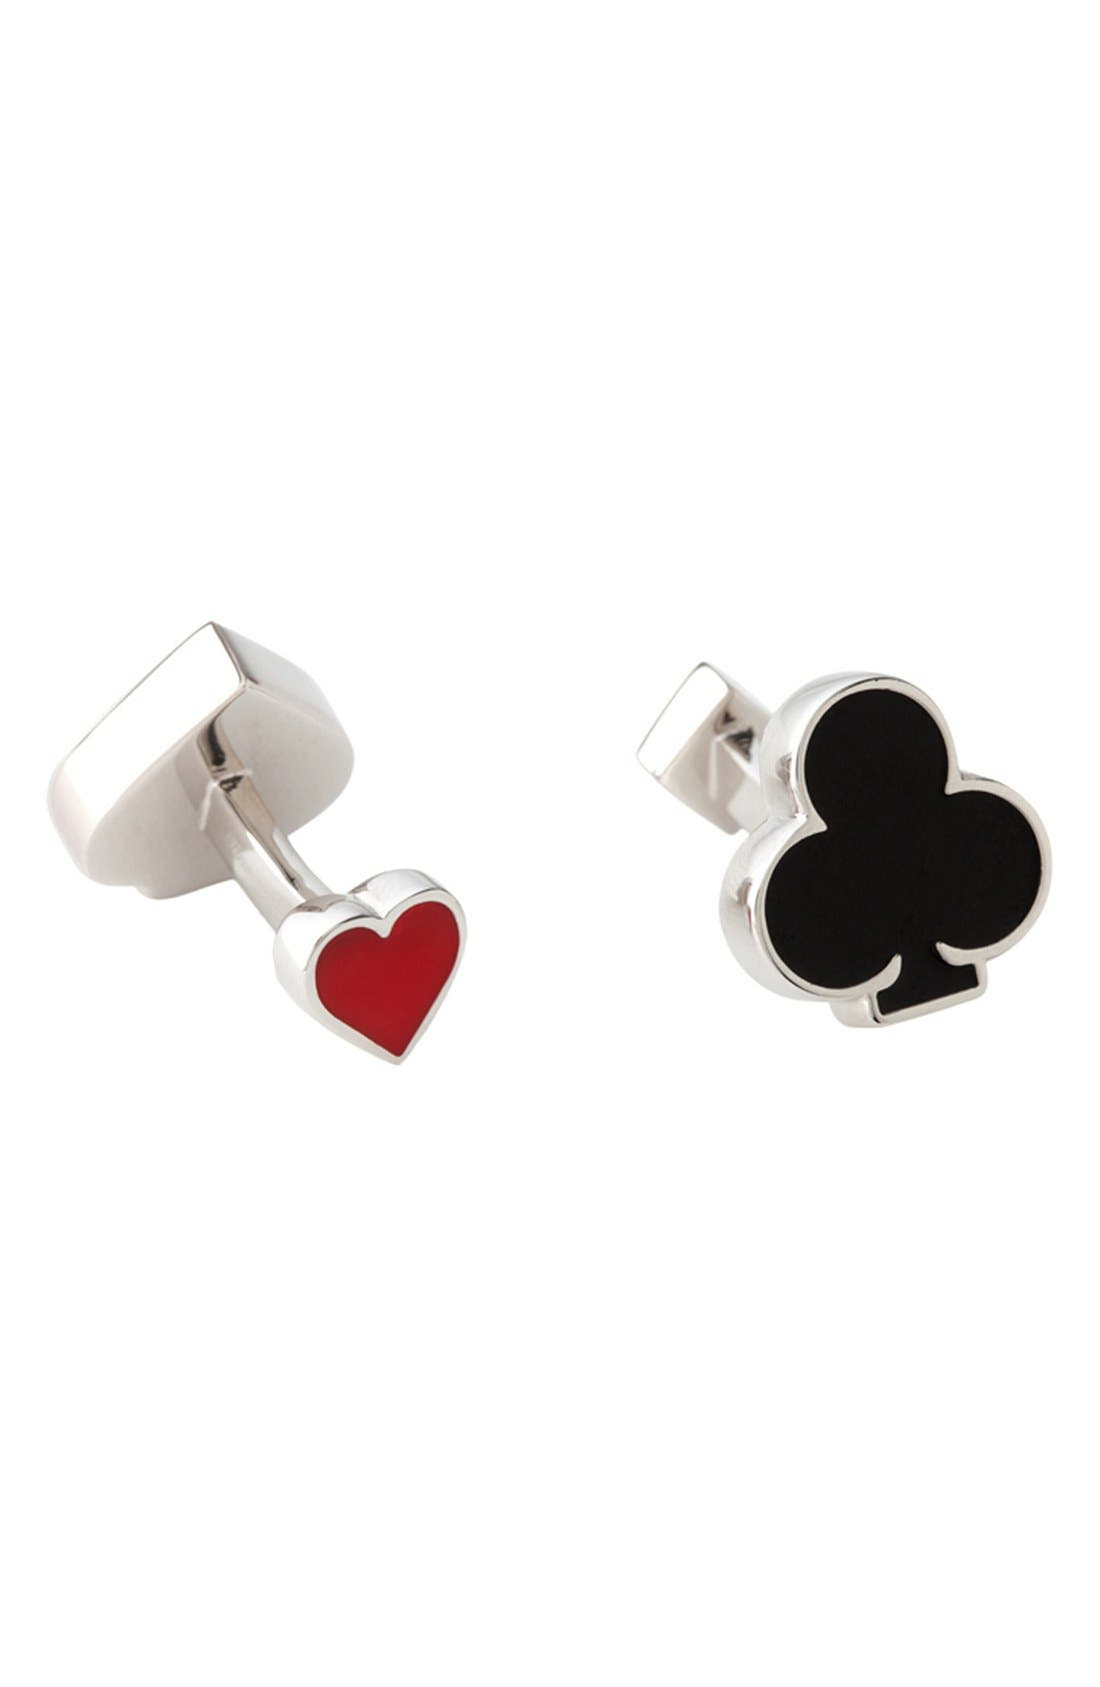 Card Suit Cuff Links,                             Main thumbnail 1, color,                             Silver